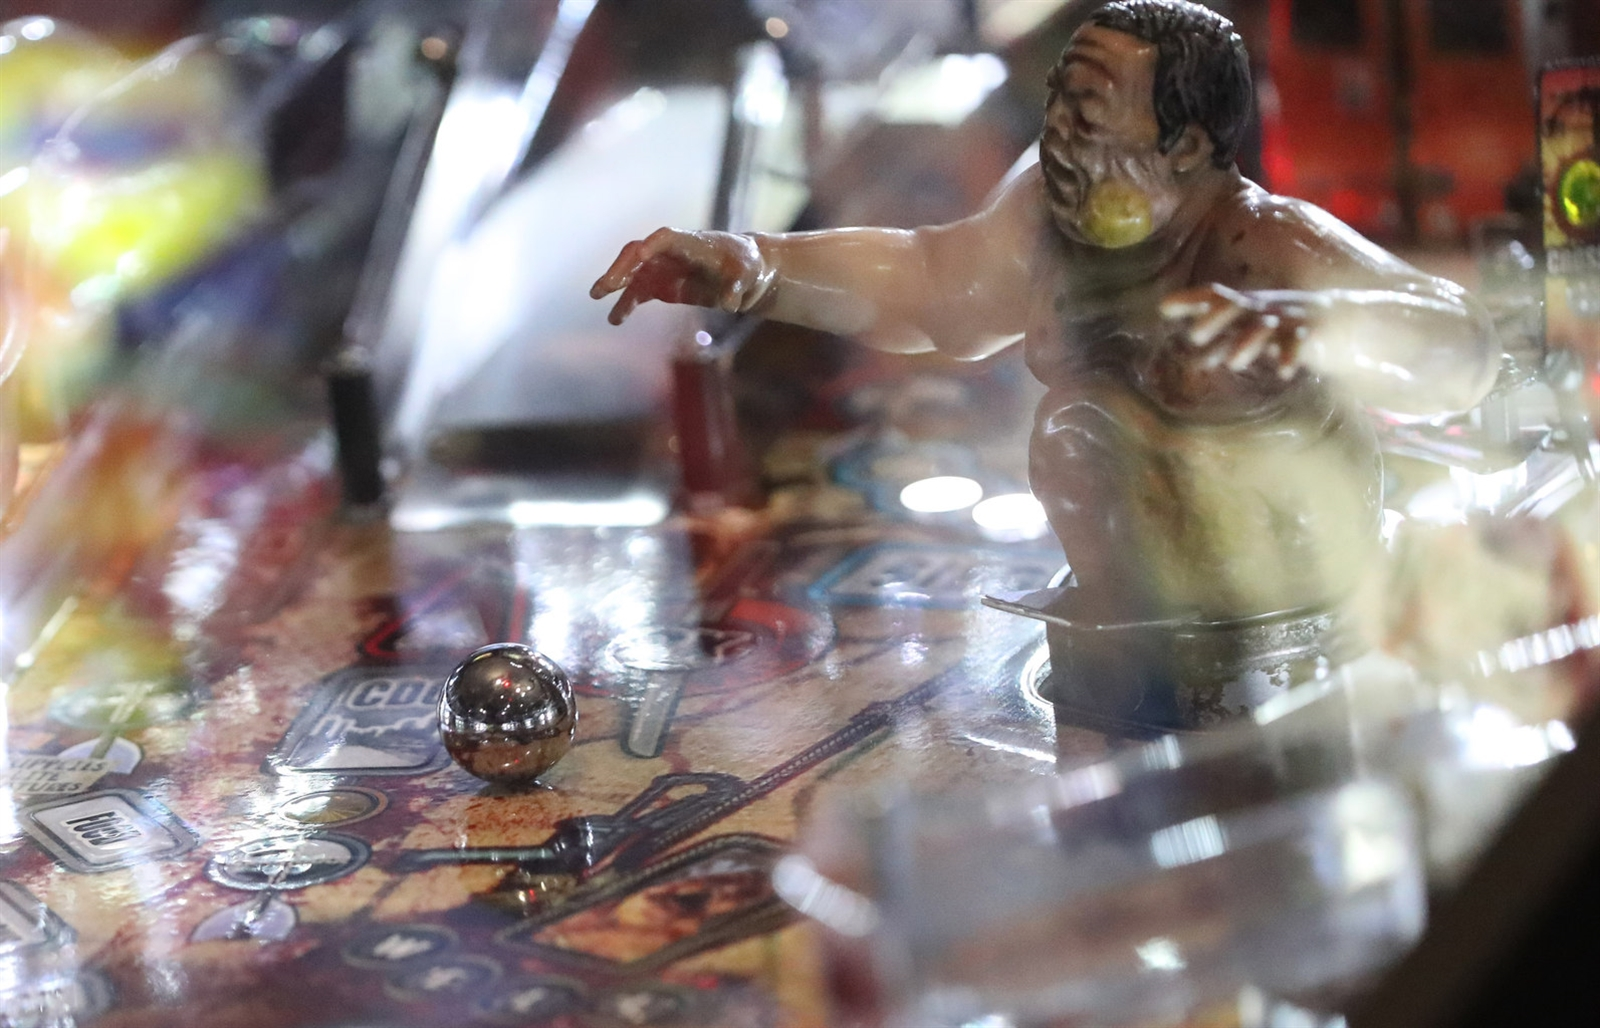 The pinball is the star of the show. This is a game of The Walking Dead being played.